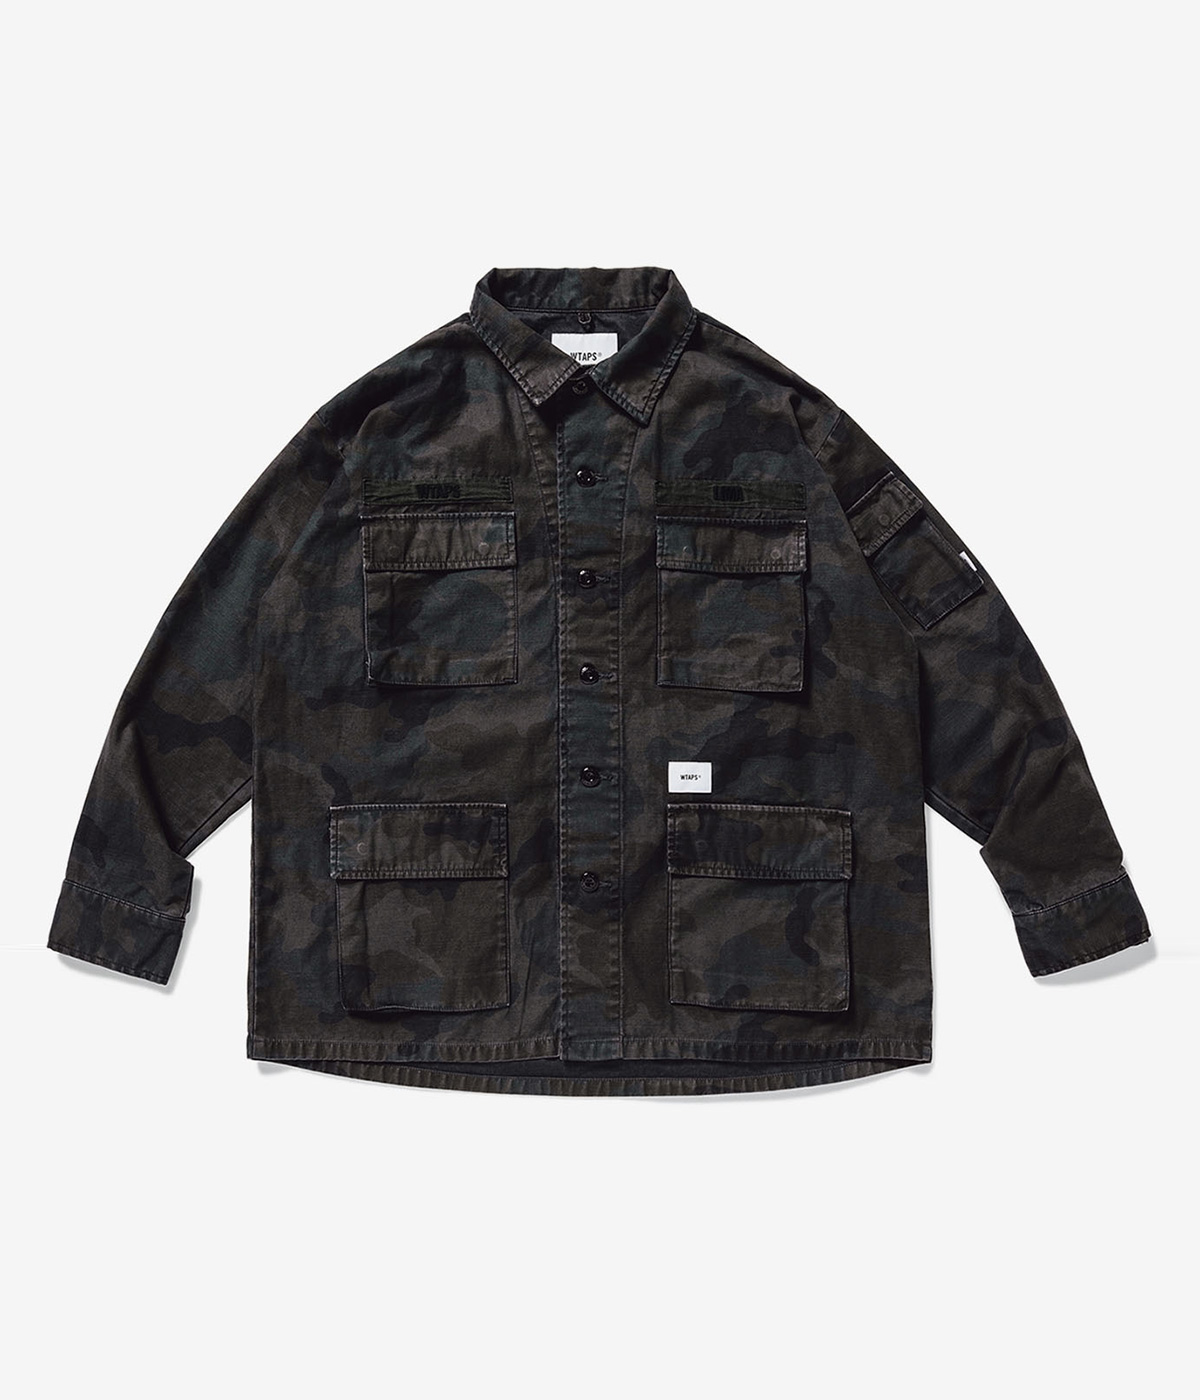 JUNGLE LS 02 / SHIRT. COTTON. SATIN. CAMO